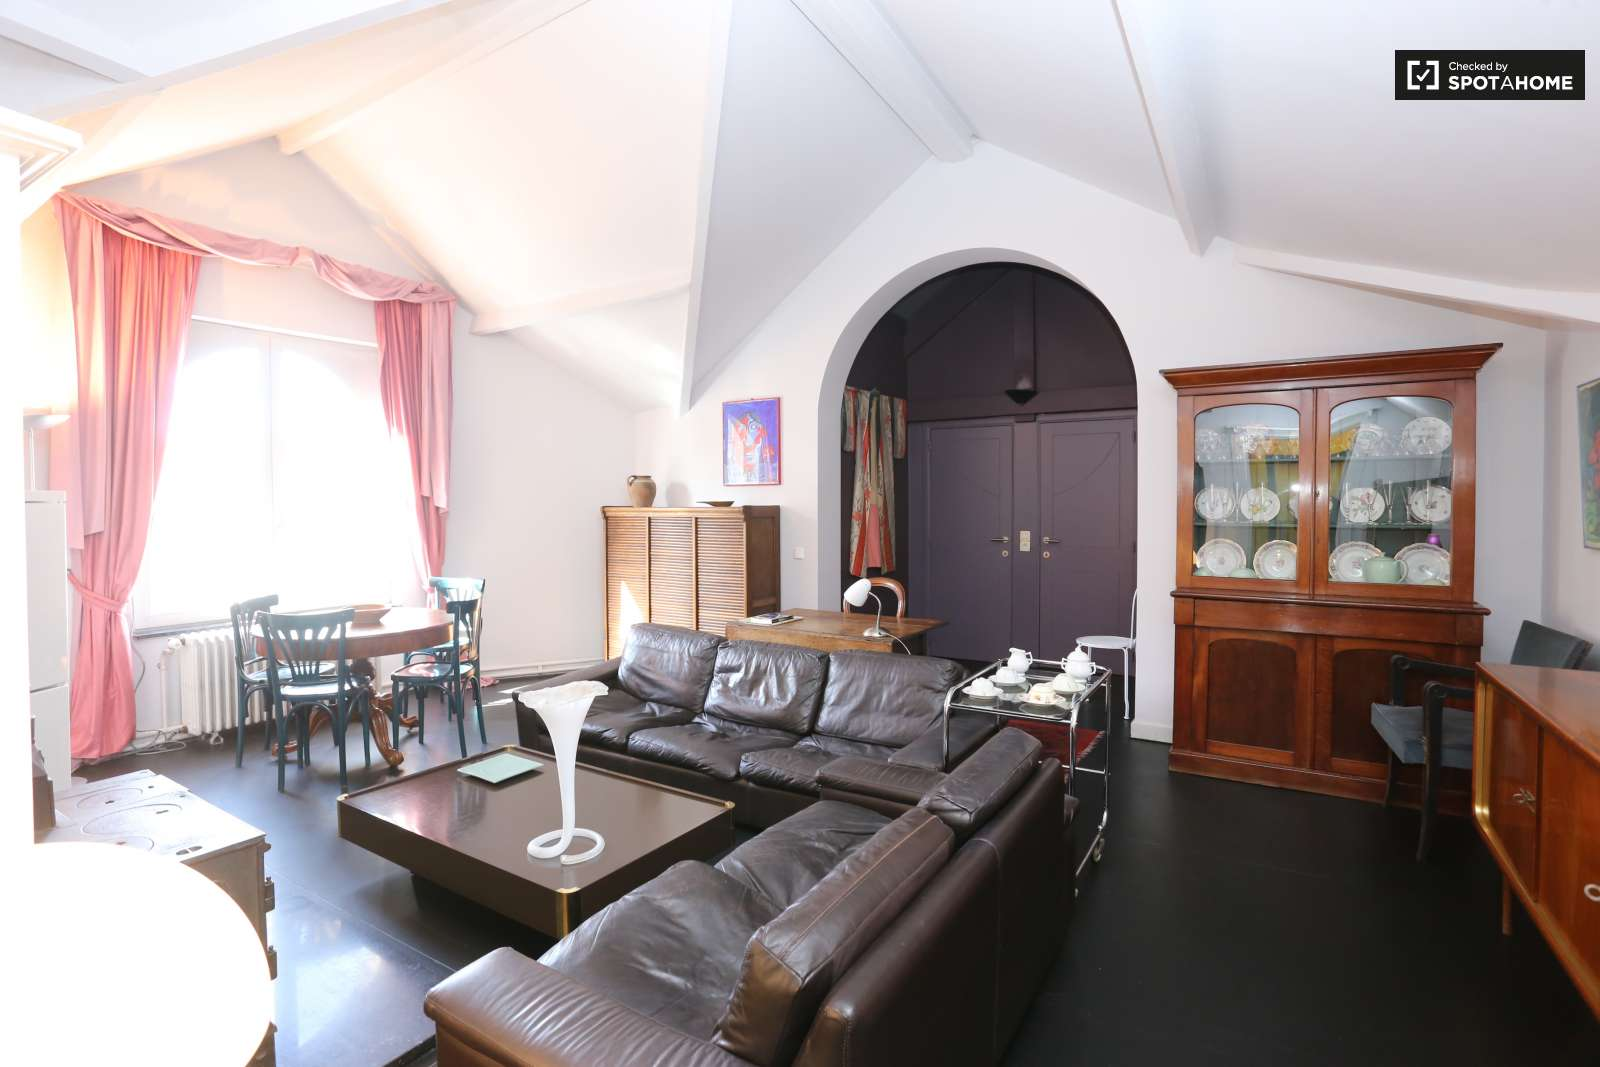 Beautiful 2 bedroom apartment for rent in ixelles brussels ref 143699 spotahome